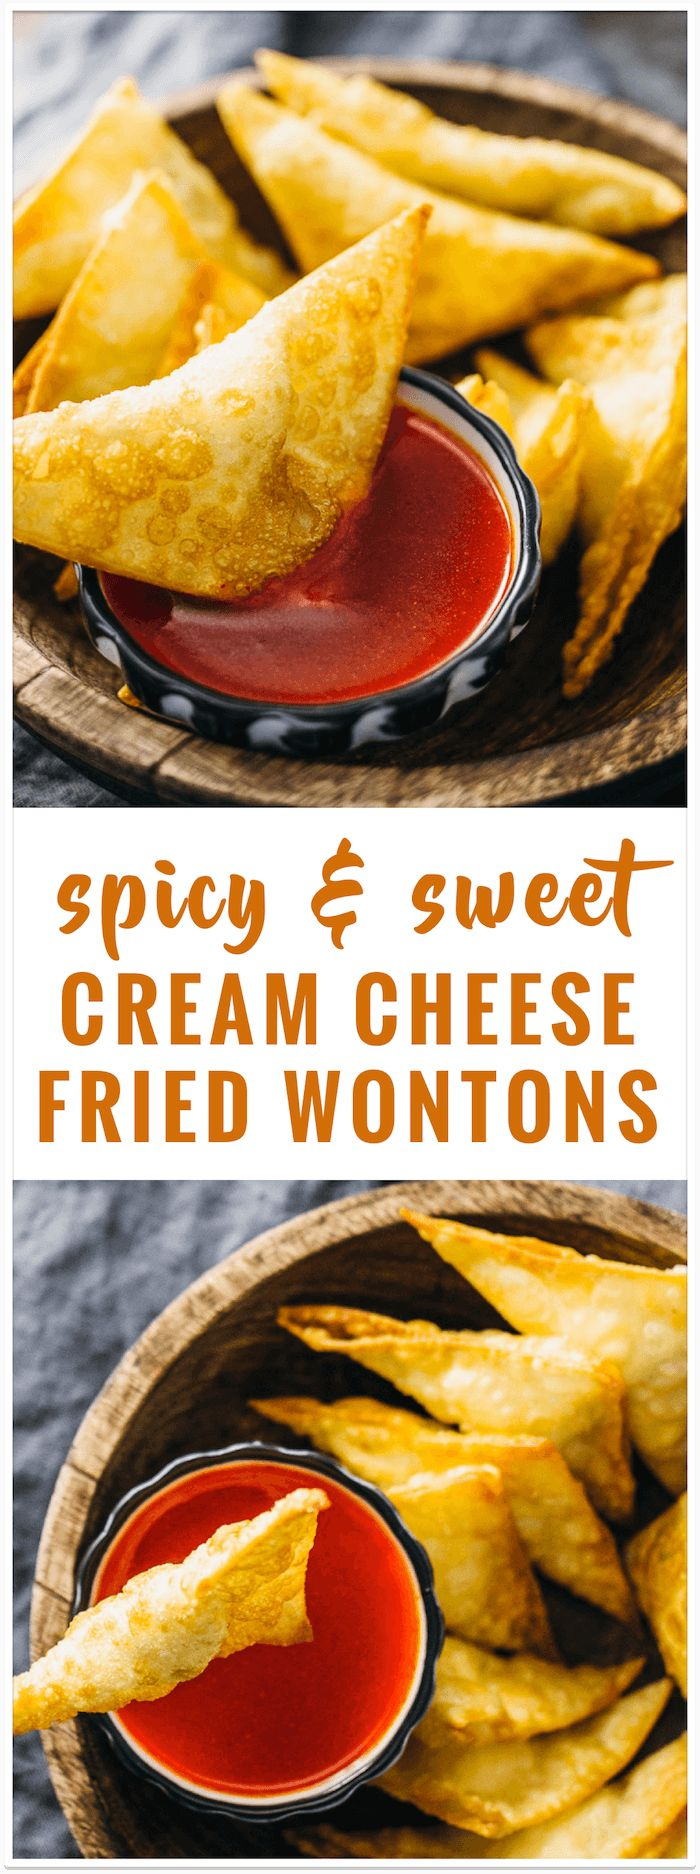 Spicy and sweet cream cheese fried wontons recipe: These fried wontons are stuffed with sweetened cream cheese and served with a sweet chili dipping sauce. via @savory_tooth